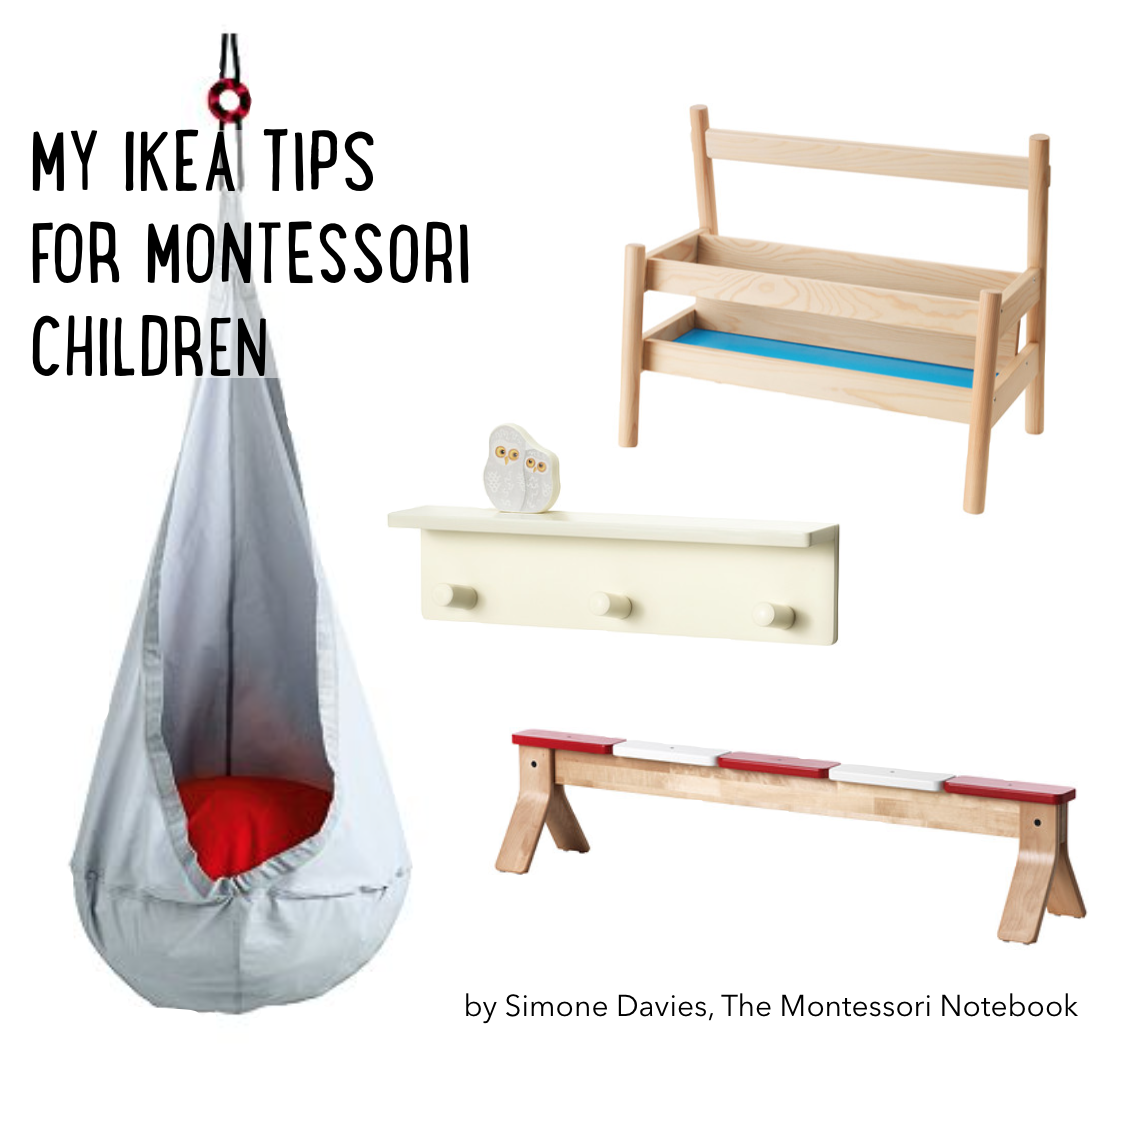 my ikea tips for Montessori children by Simone Davies, The Montessori Notebook